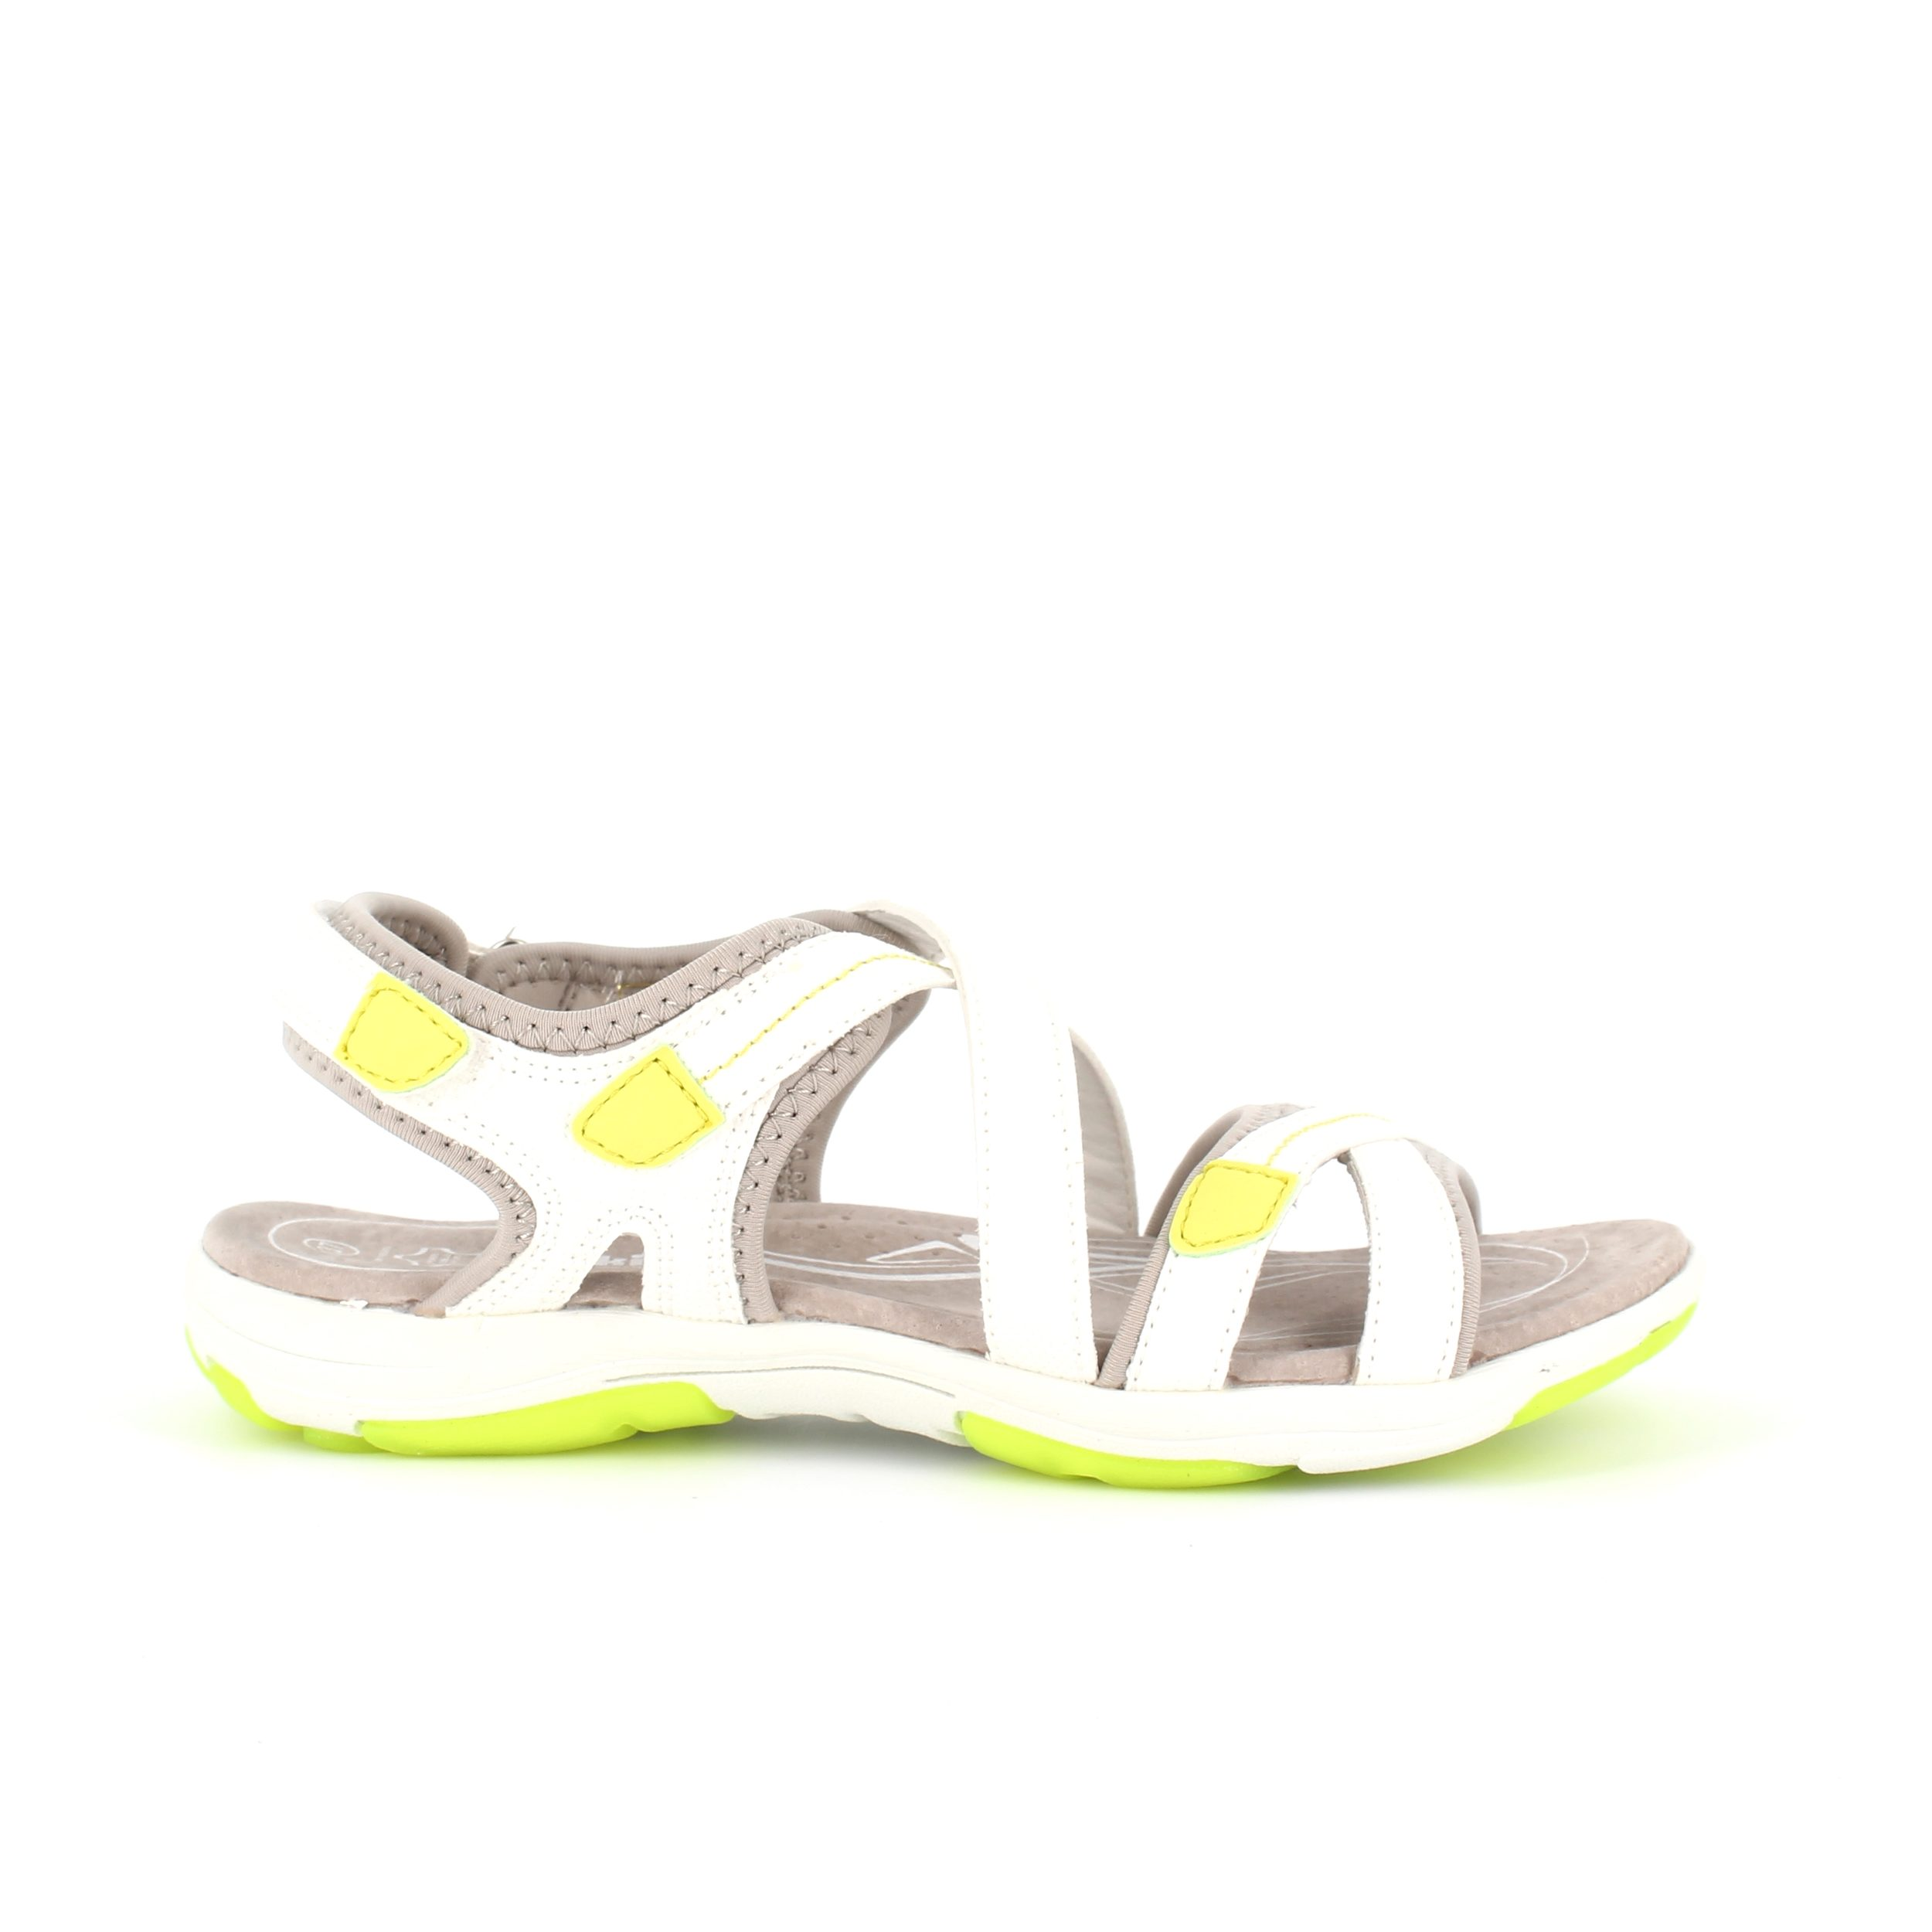 Image of   Smart sandal i frisk hvid og lime - 36